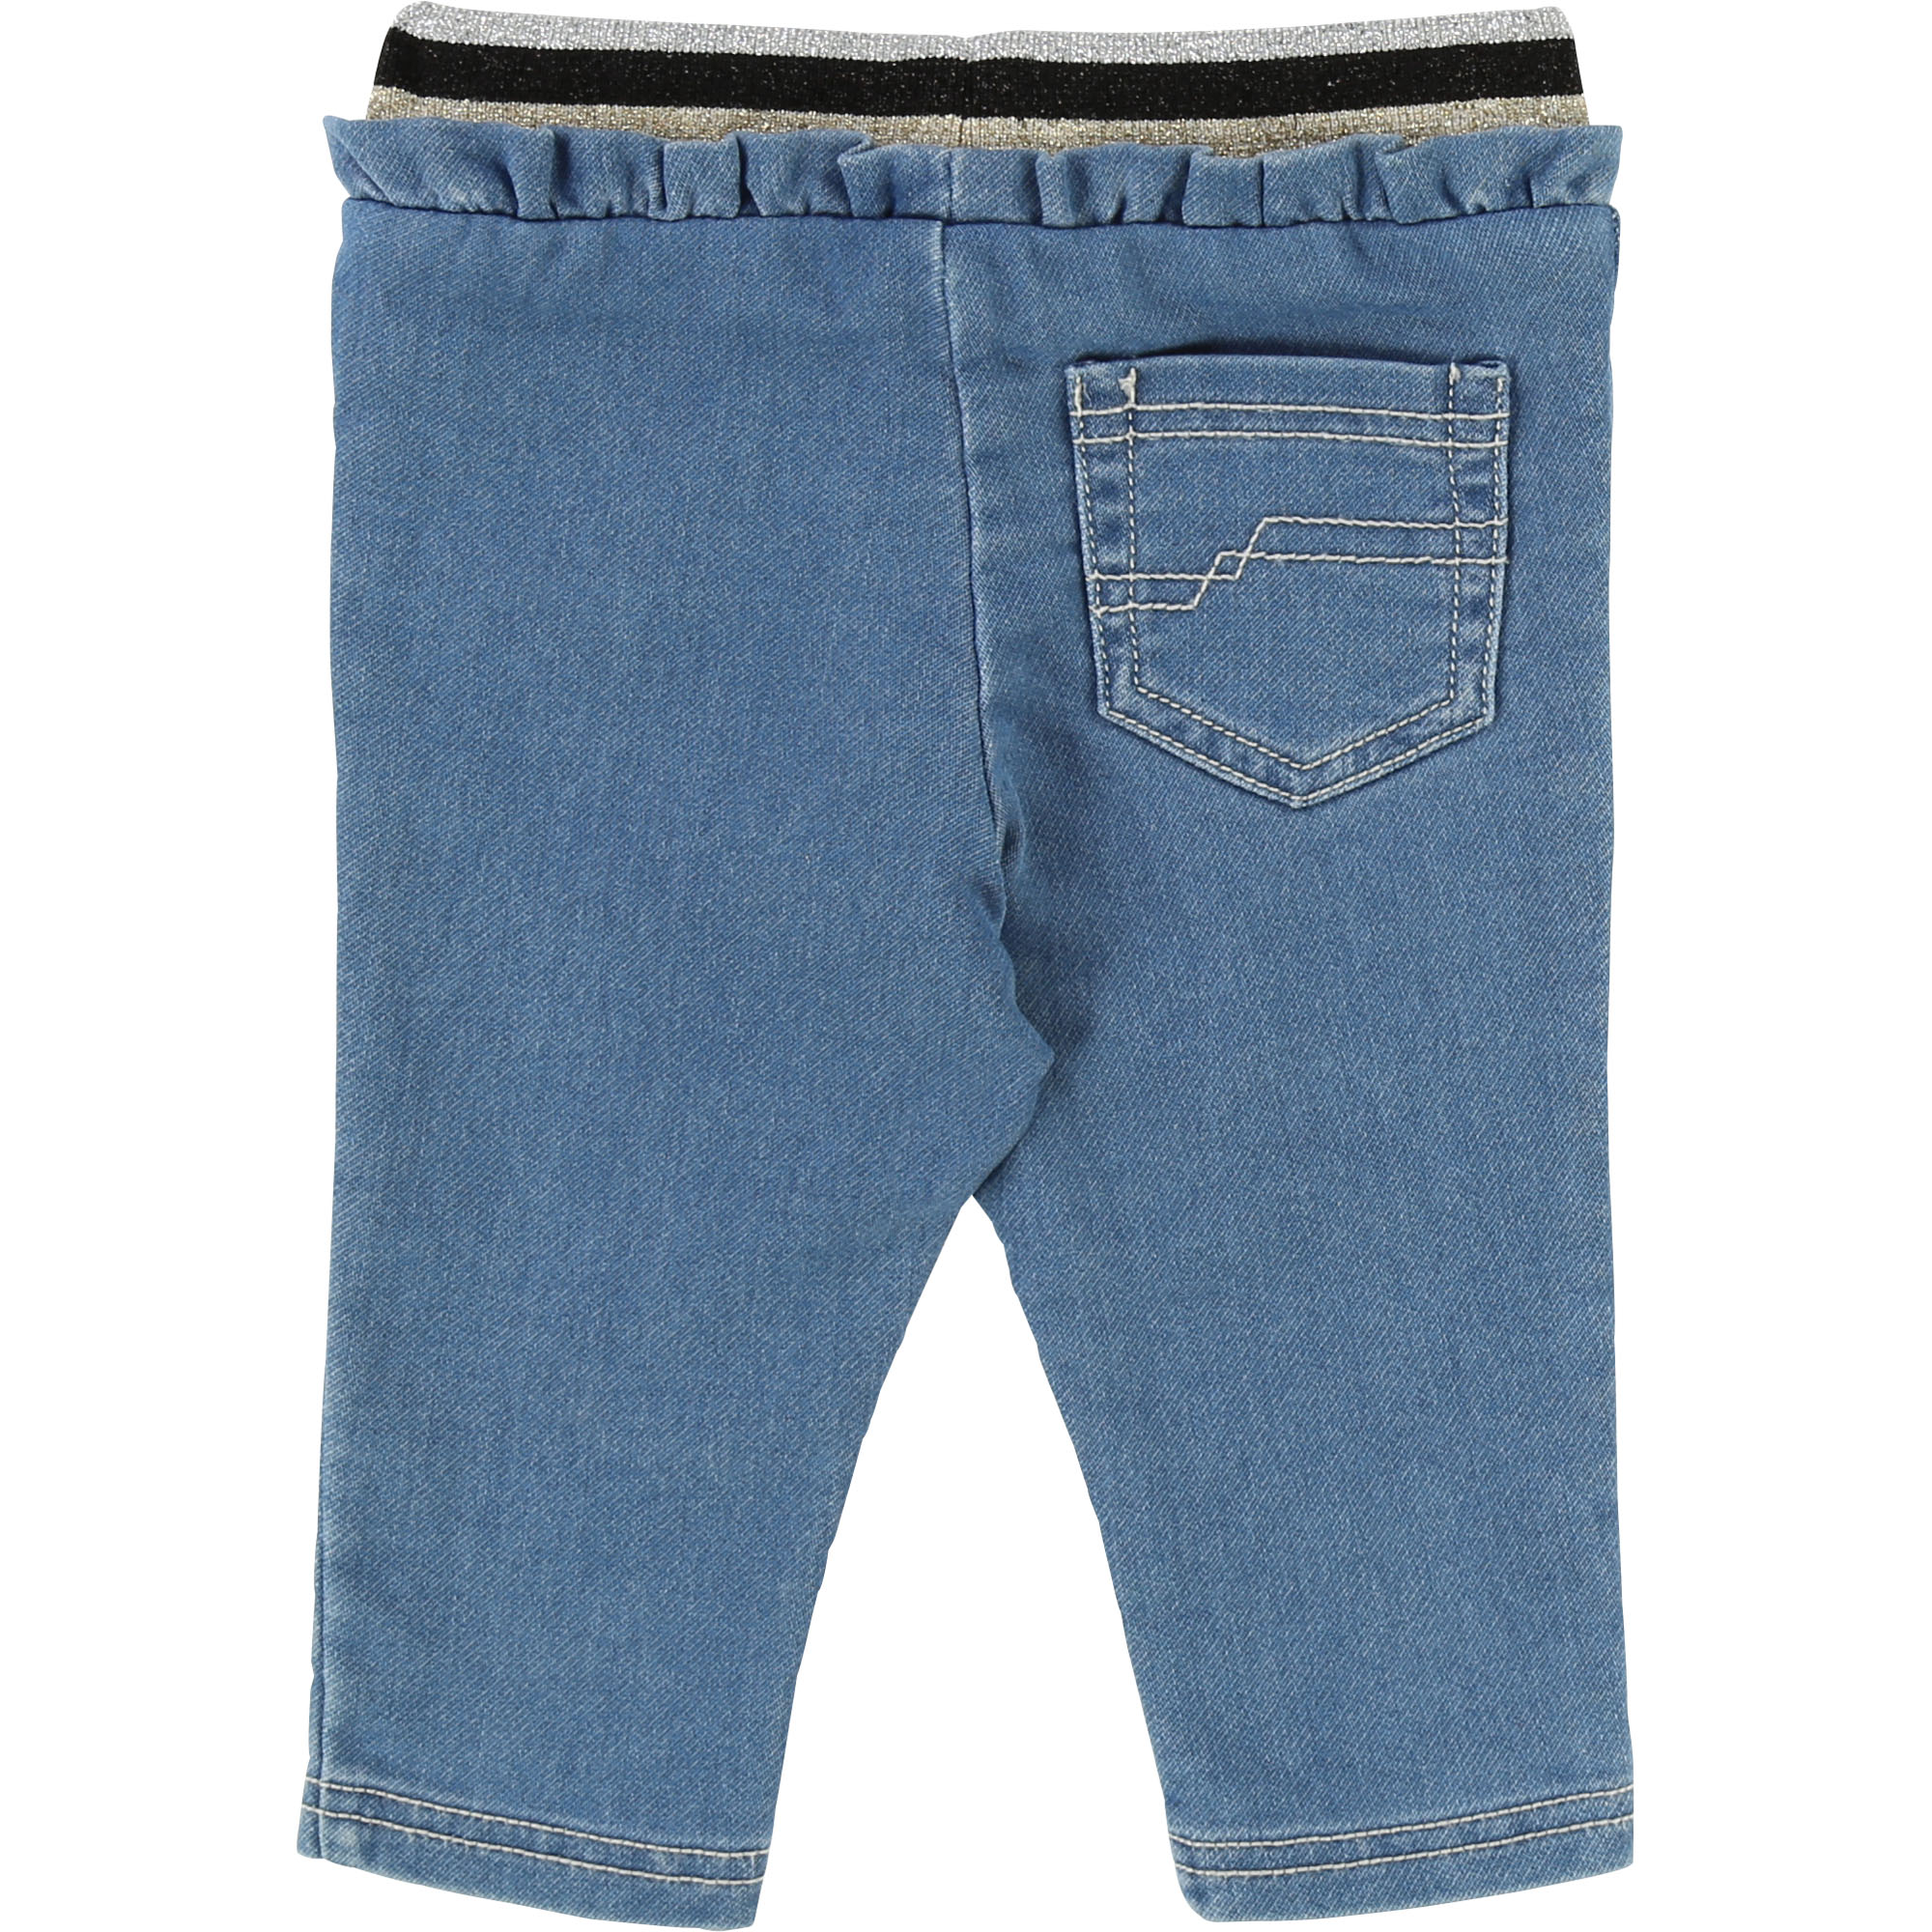 Pantalon molleton denim THE MARC JACOBS pour FILLE